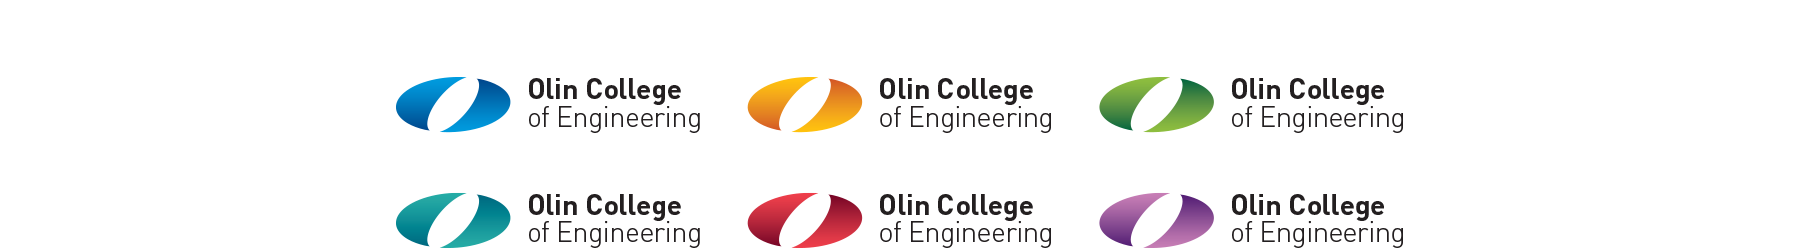 Olin College of Engineering identifier in six colors